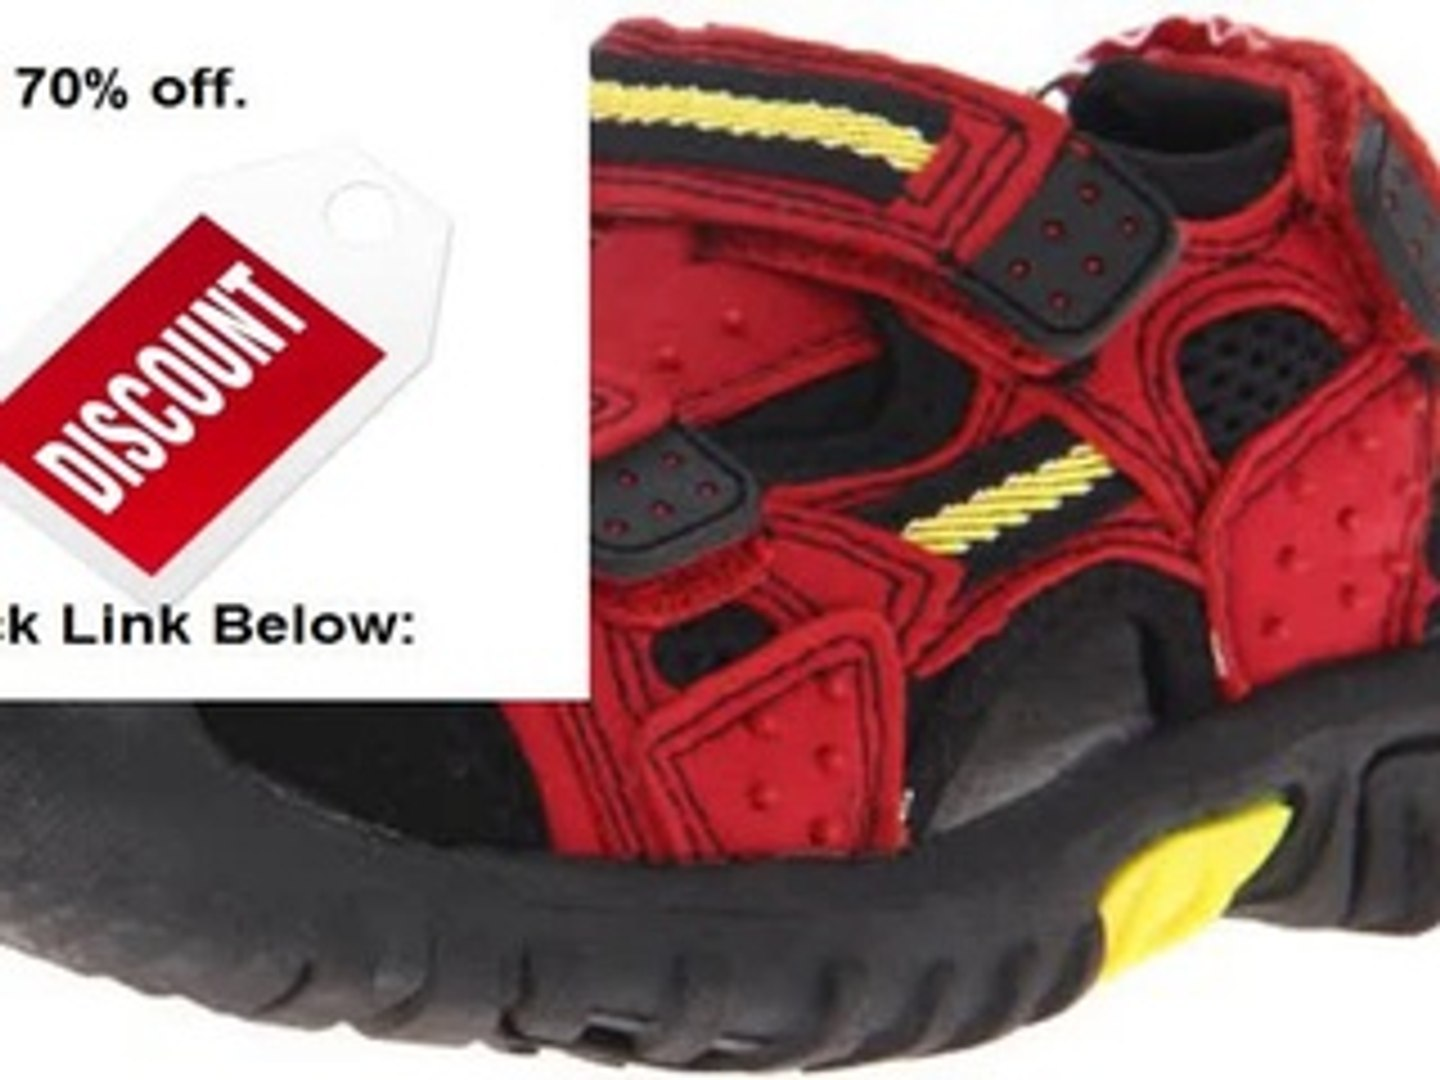 Clearance Sales! Jumping Jacks Power Sand Sport Sandal (Toddler/Little Kid) Review